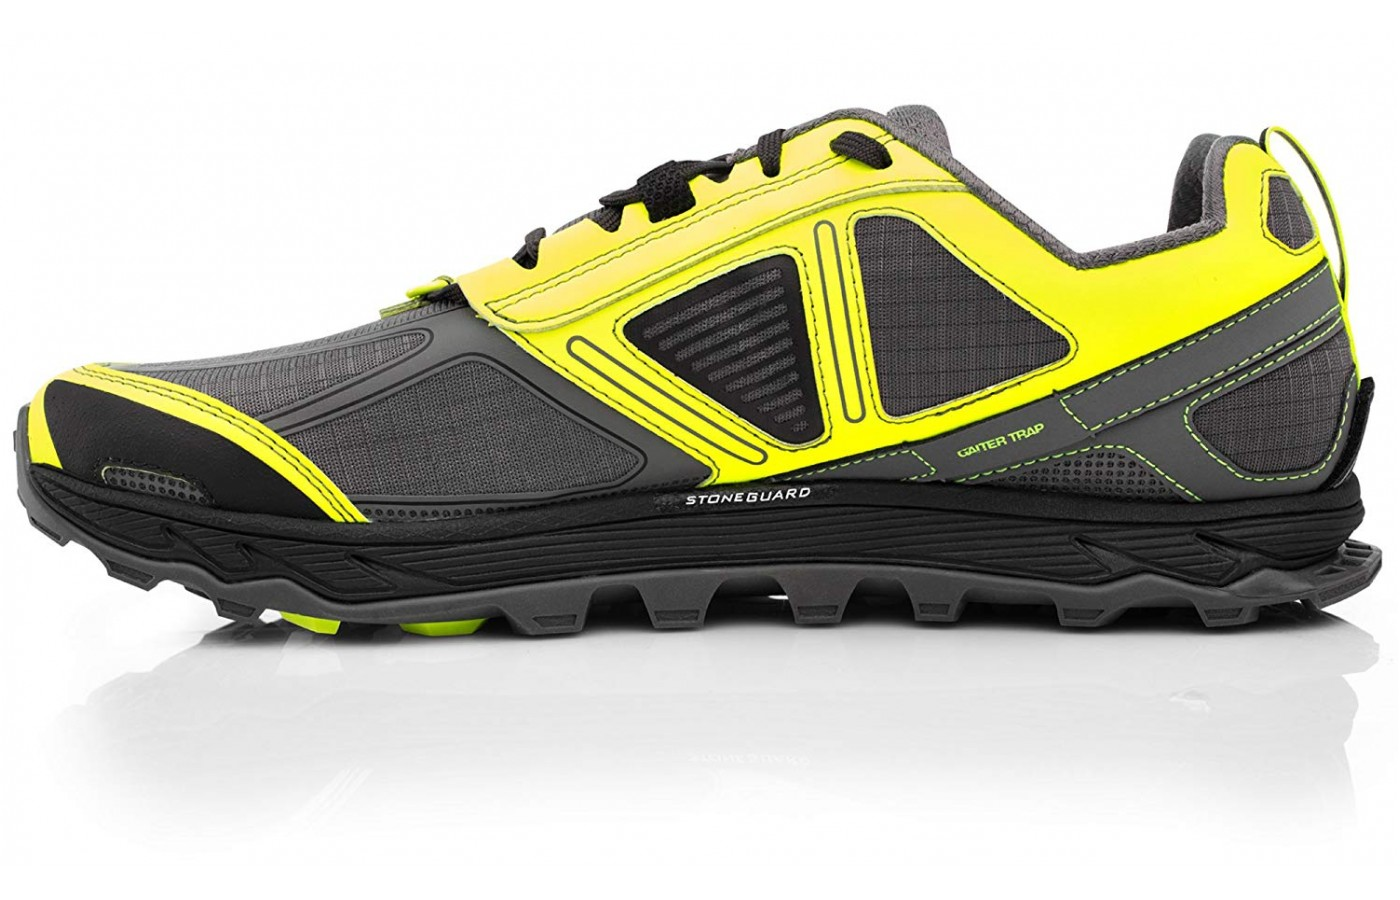 Draining mesh at the forefront and heel improve the breathability of the Lone Peak 4.